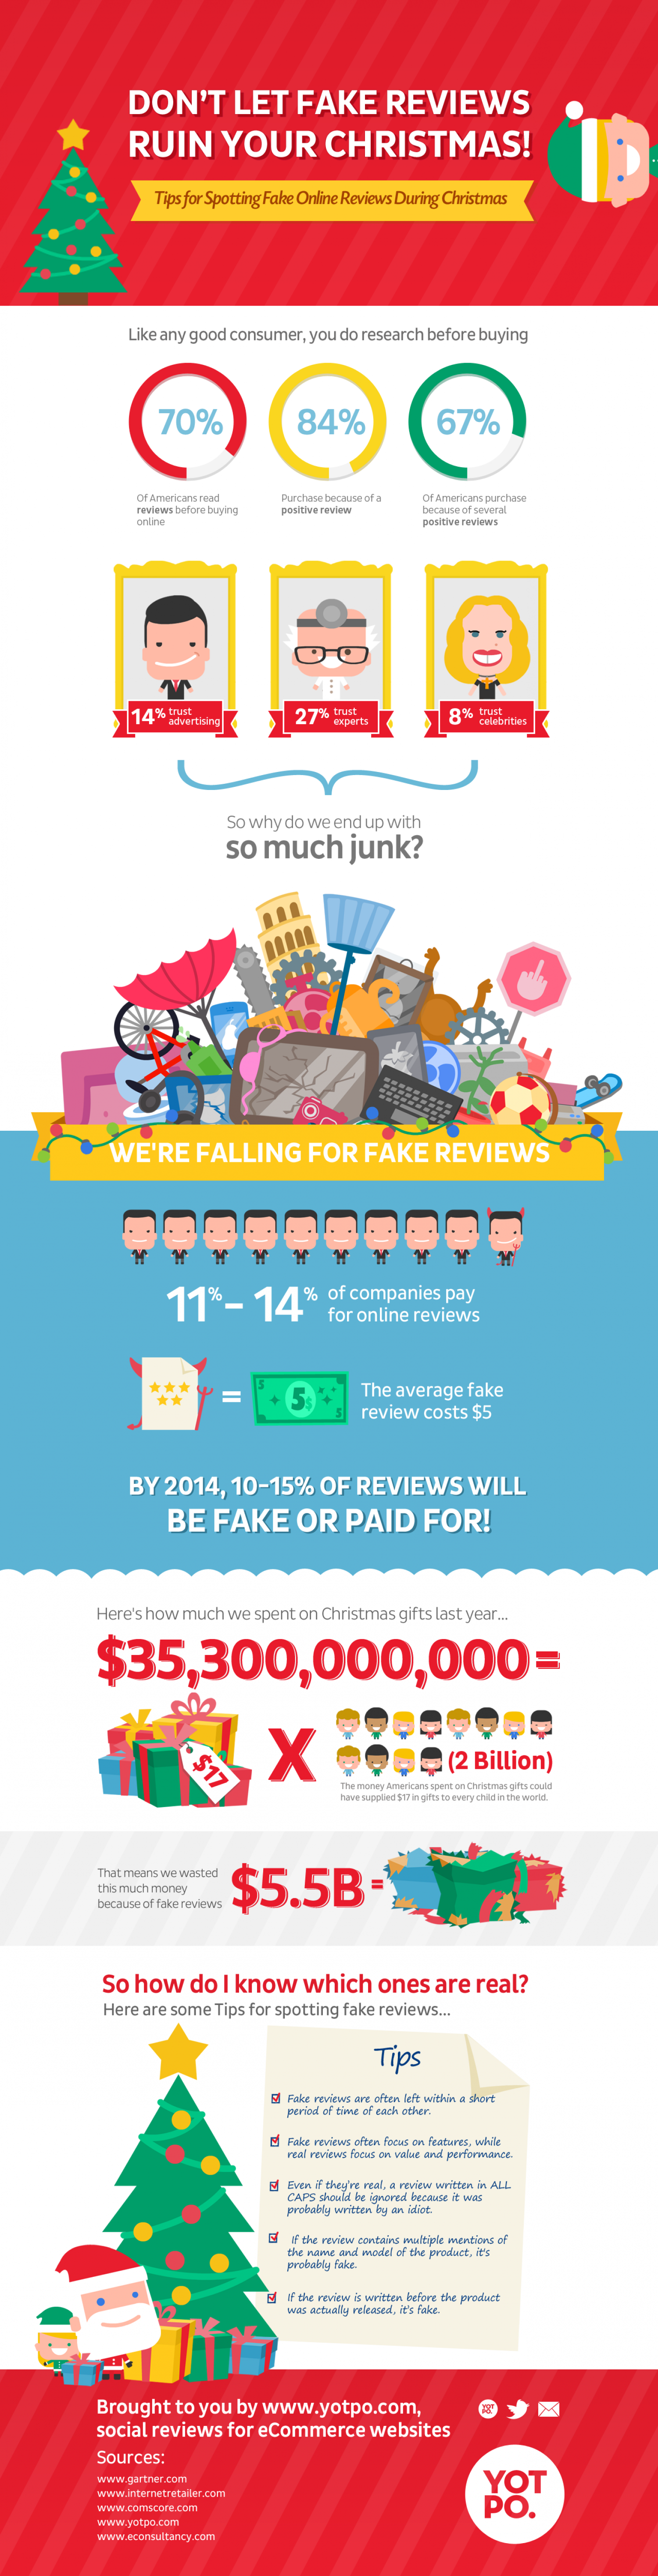 Don't let fake reviews ruin your Christmas Infographic